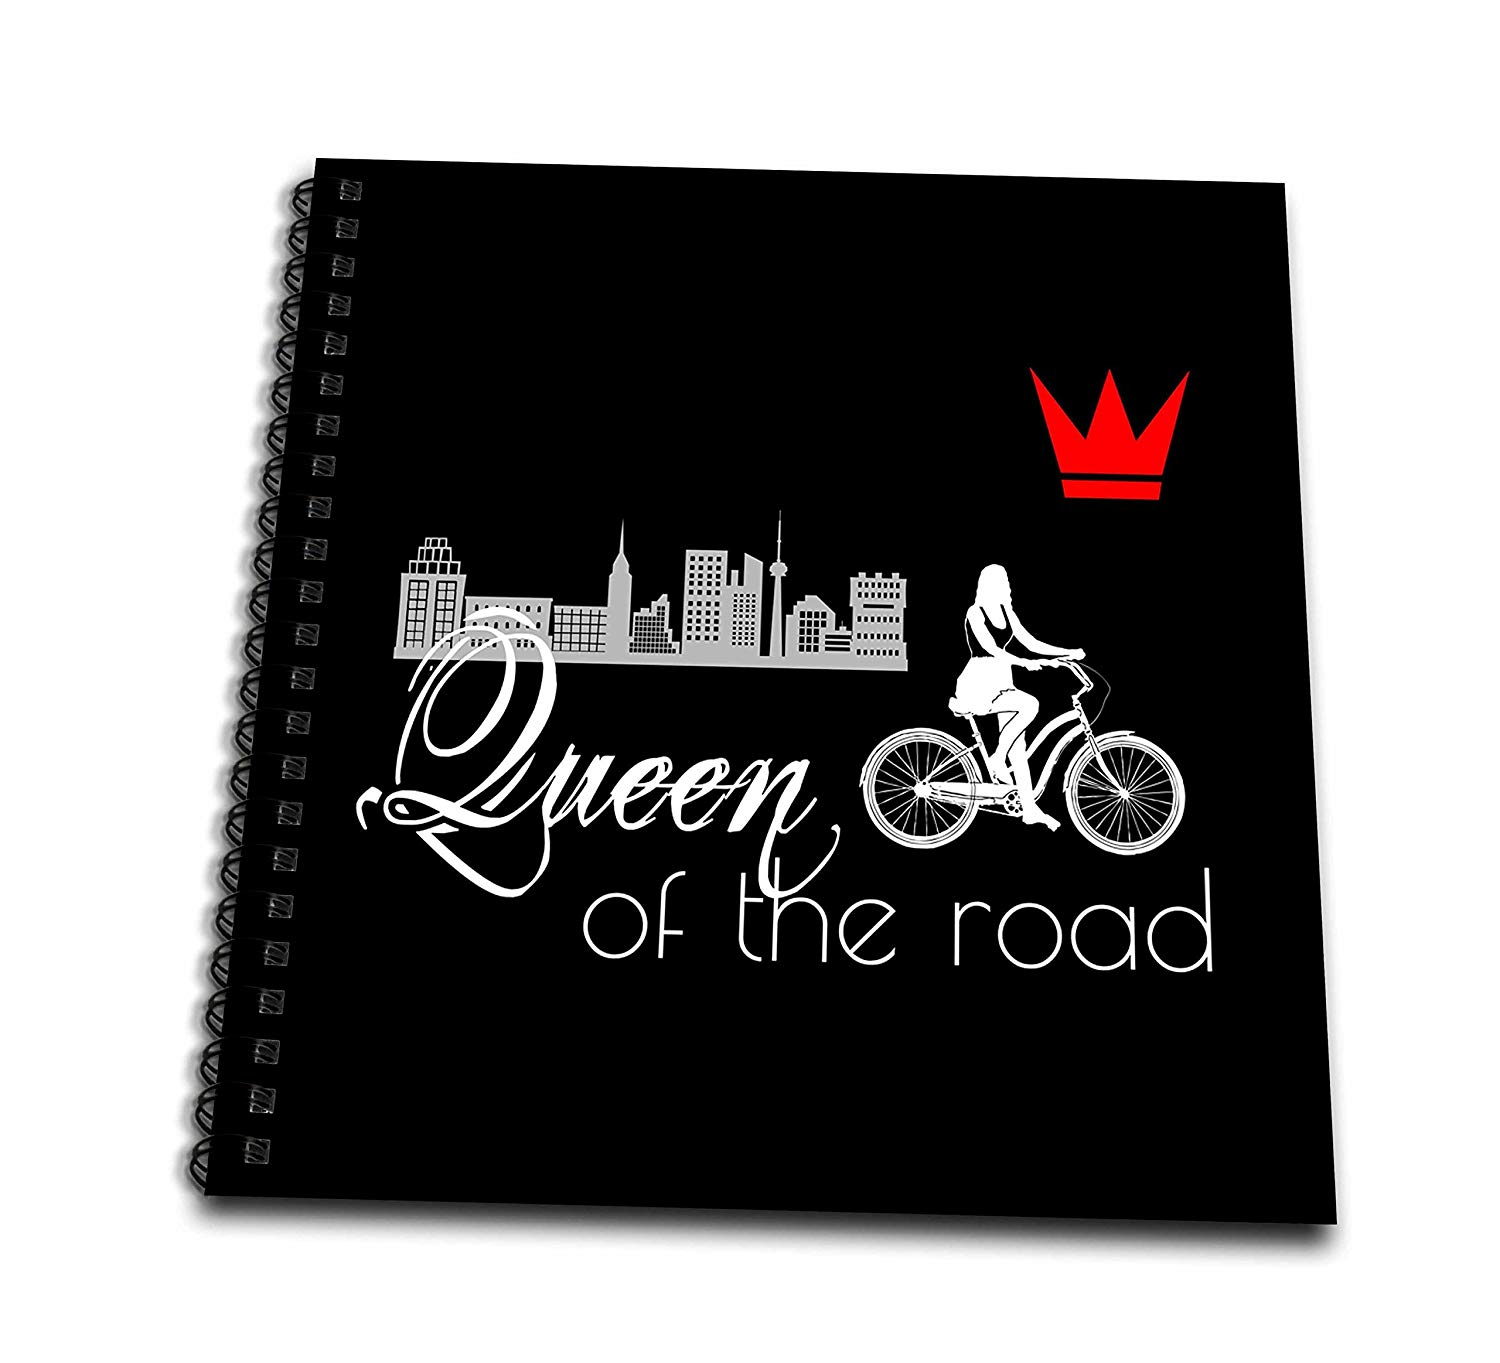 3dRose Alexis Design - Sport Bicycle - Queen of The Road. Female Bicycle Rider, red Crown, City on Black - Memory Book 12 x 12 inch (db_281275_2)